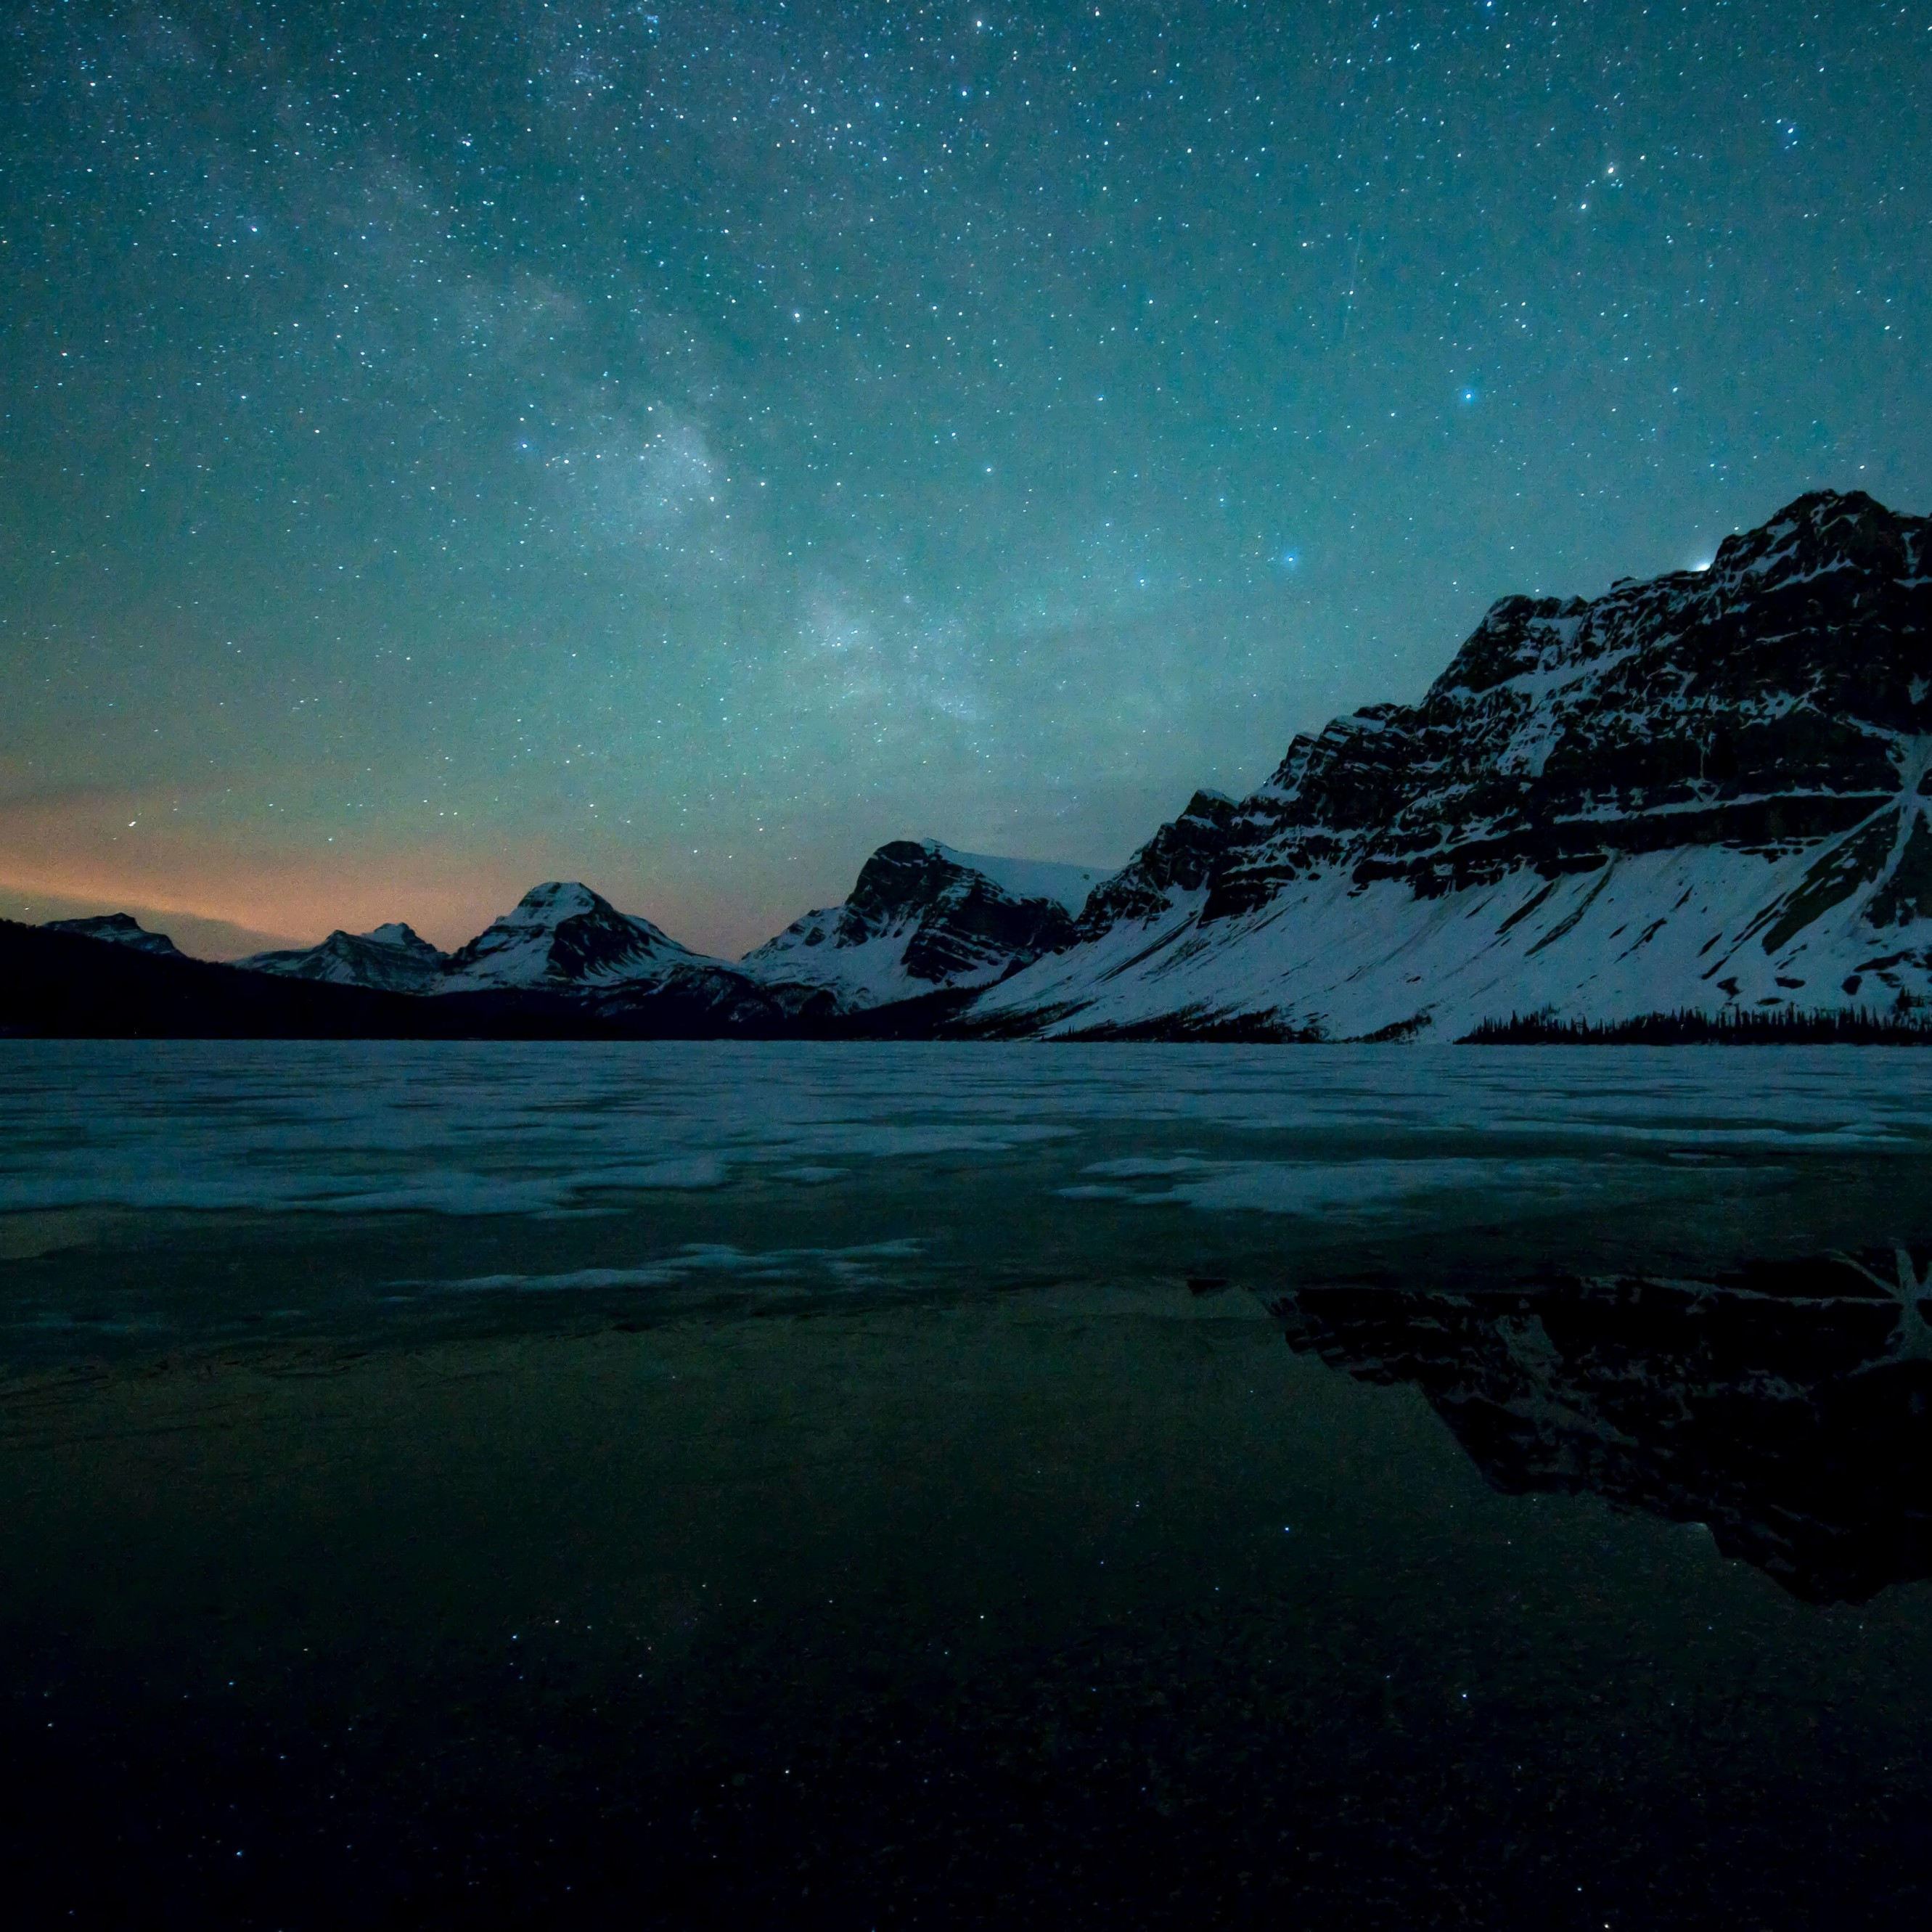 Milky Way over Bow Lake, Alberta, Canada Wallpaper for Apple iPhone 6 Plus